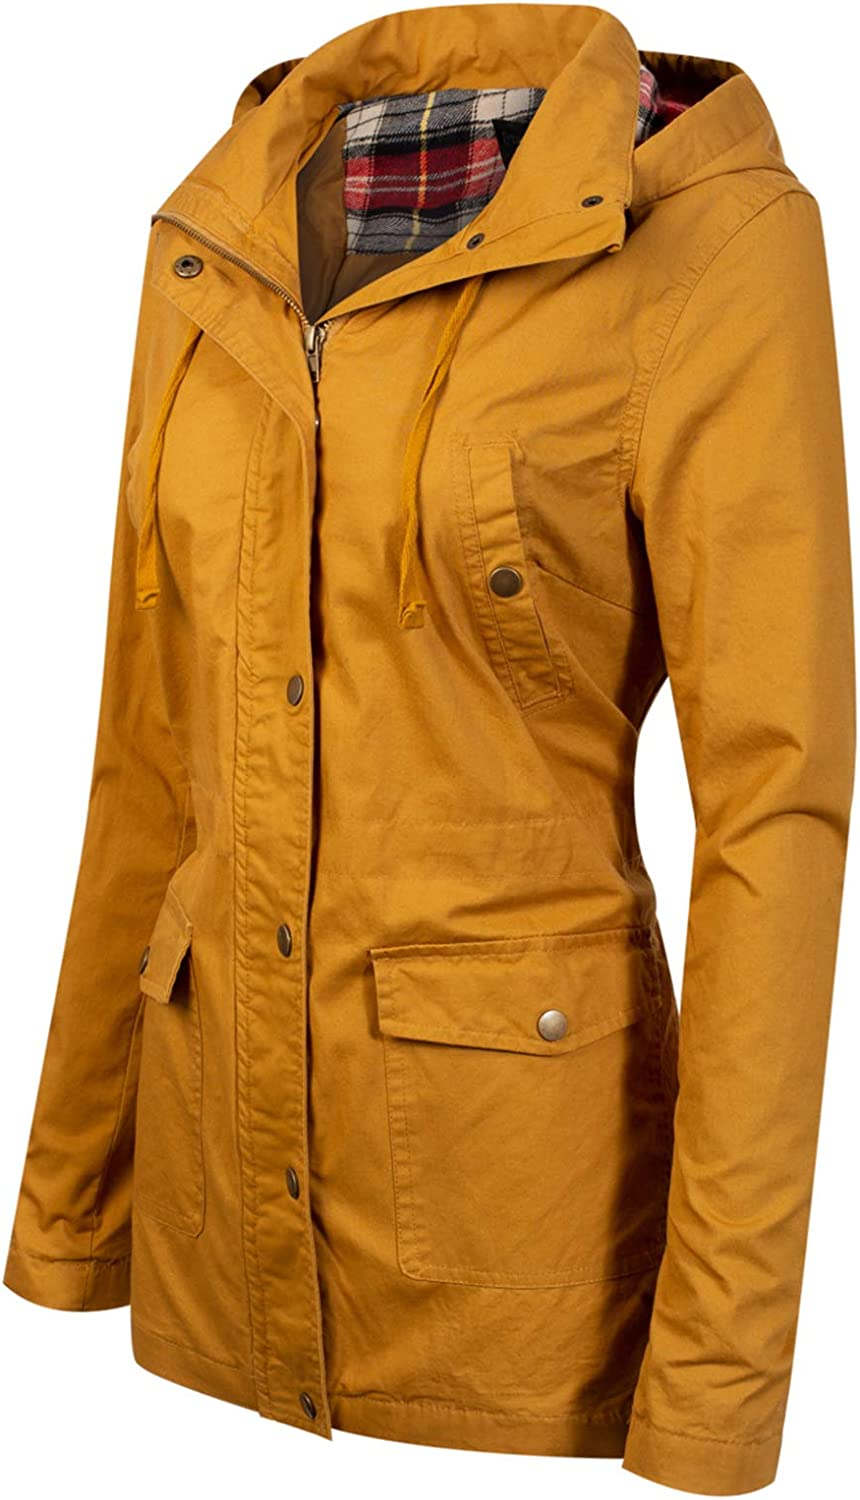 Design by Olivia Womens Anorak Safari Hoodie Jacket up to Plus Size